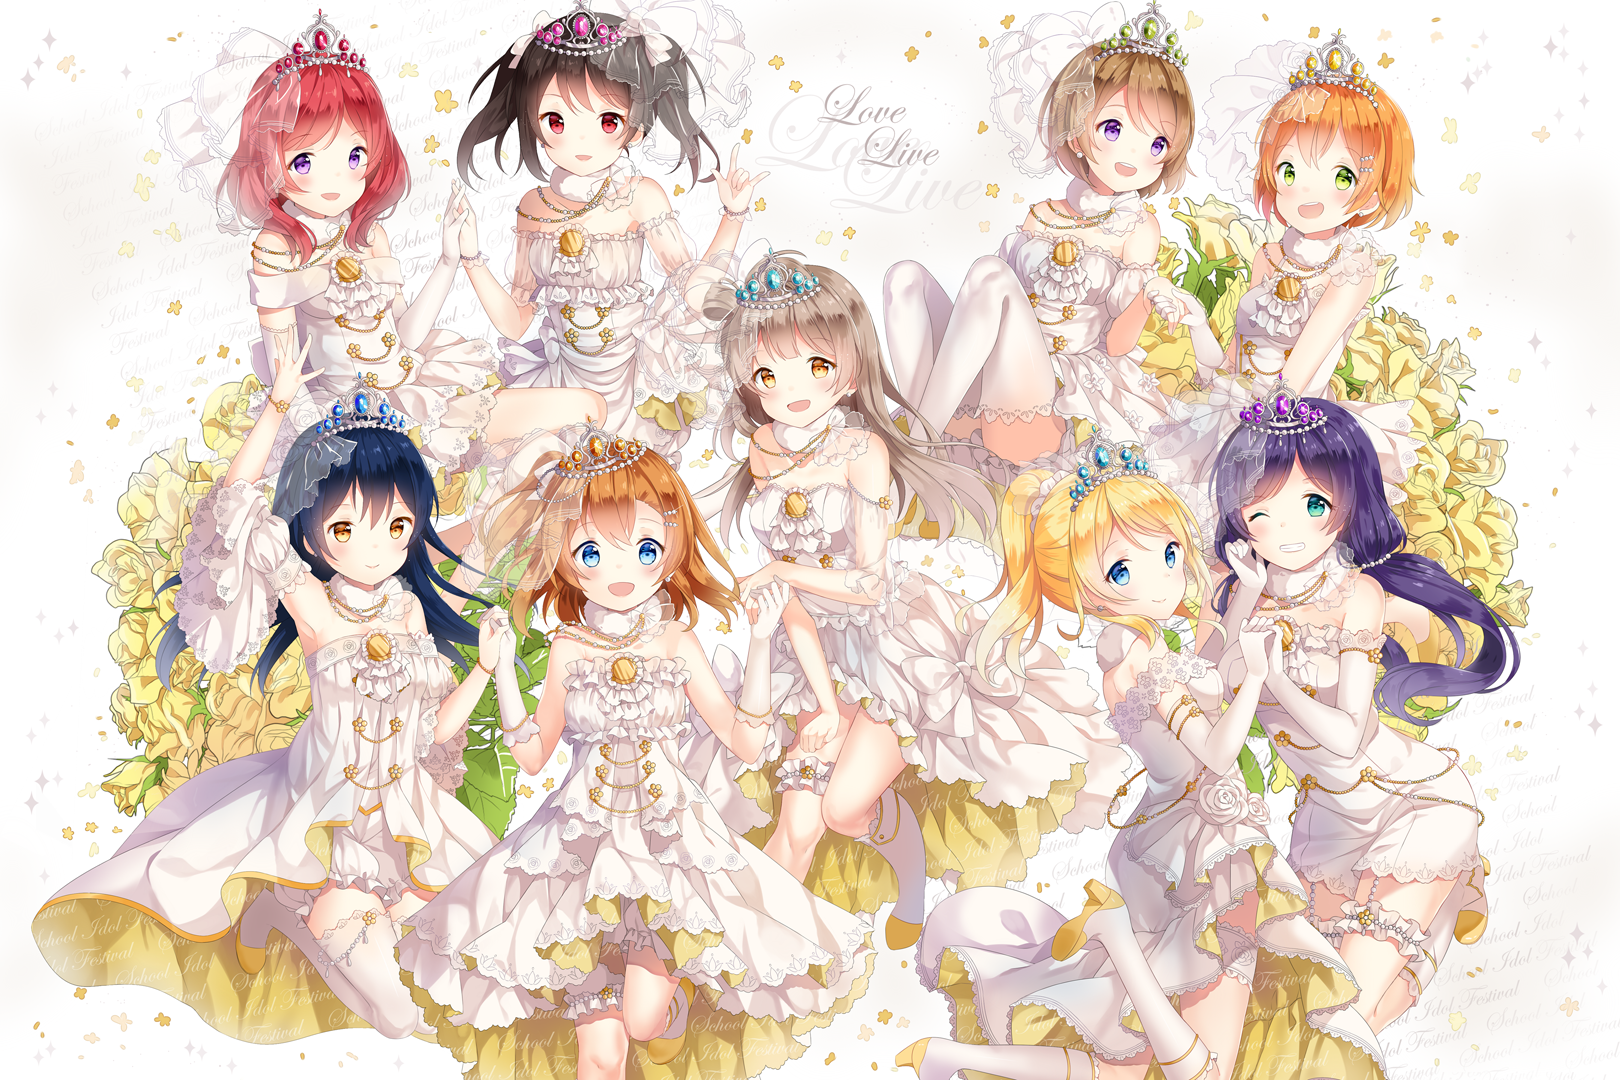 Love Live Wallpaper Desktop : Love Live! Fondo de Pantalla and Fondo de escritorio 1620x1080 ID:776799